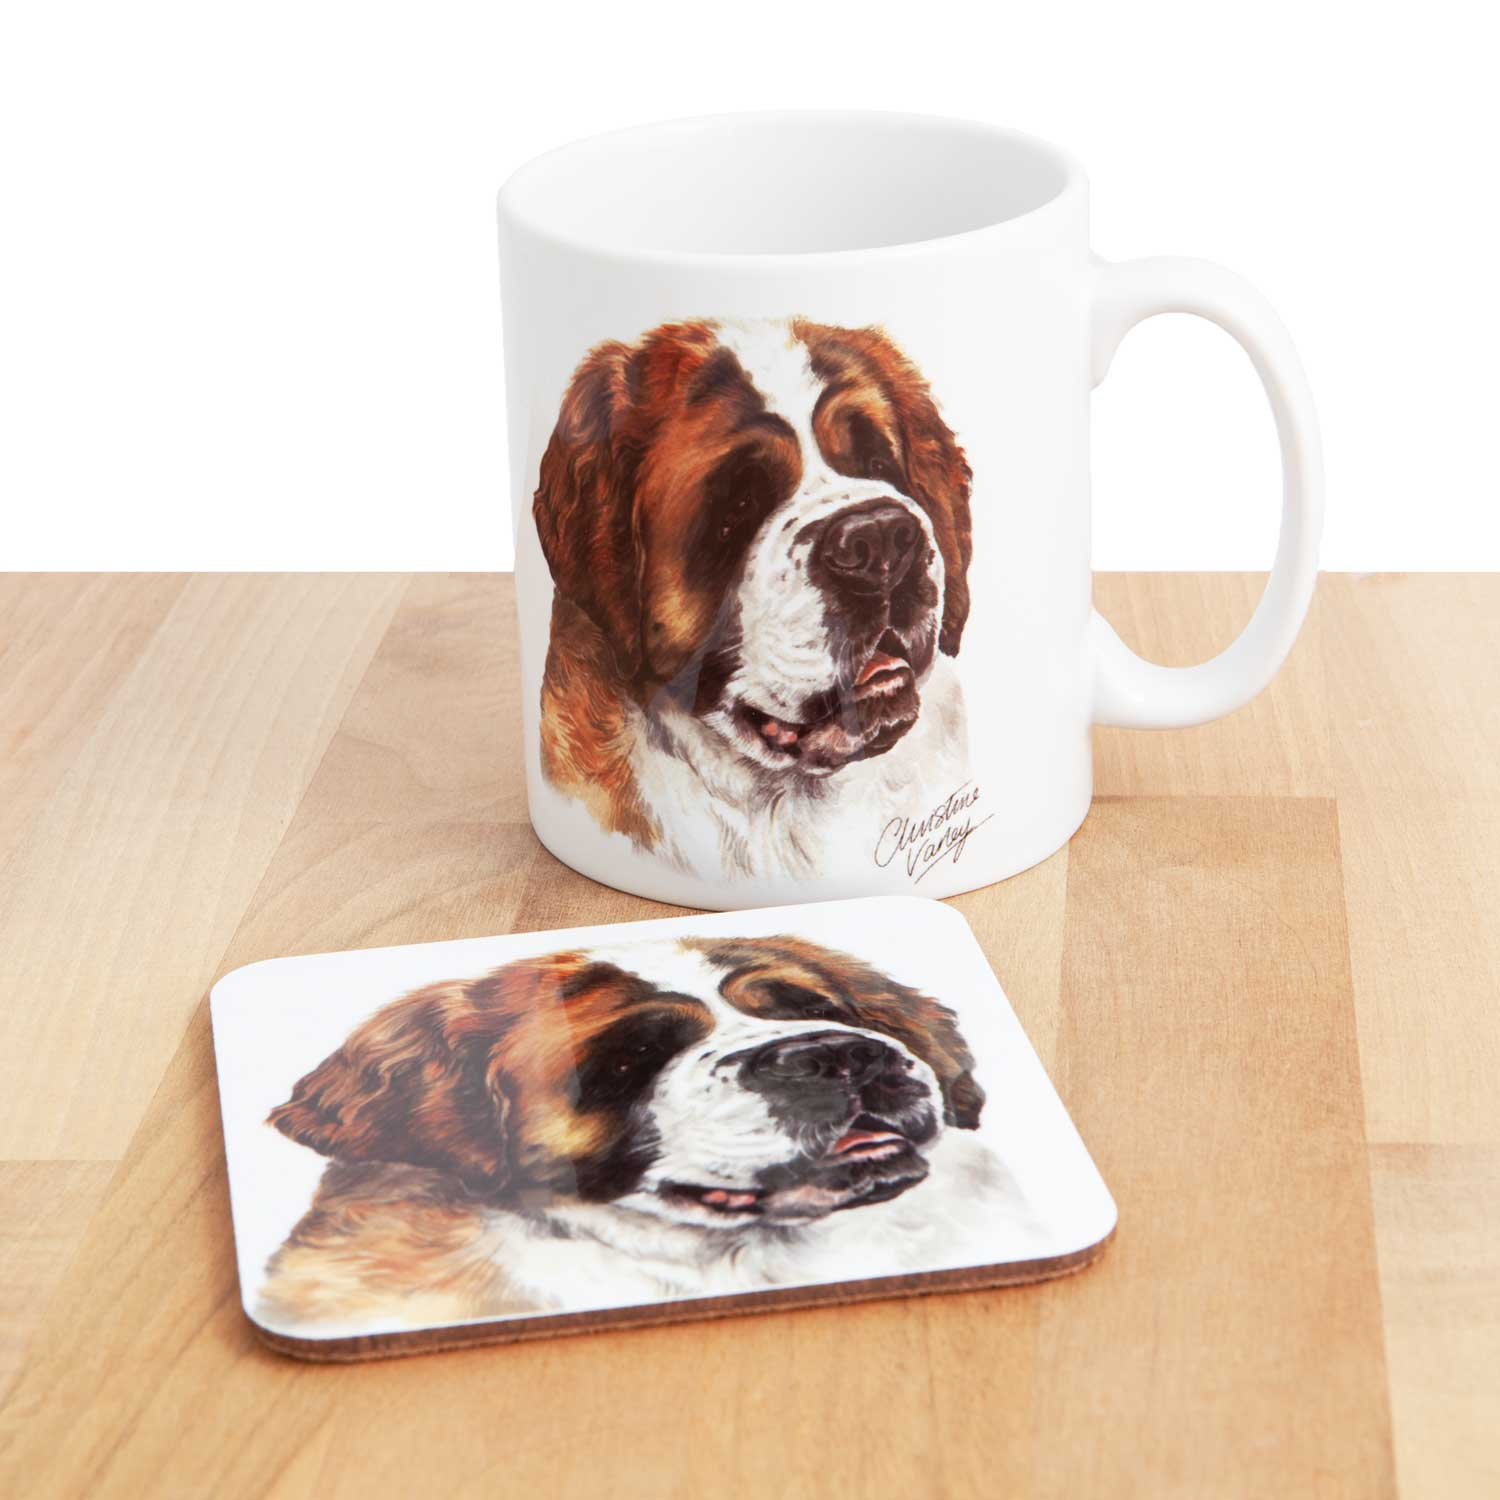 Dog Lover Gifts available at Dog Krazy Gifts - St.Bernard Mug, part of our Christine Varley collection – available at www.dogkrazygifts.co.uk